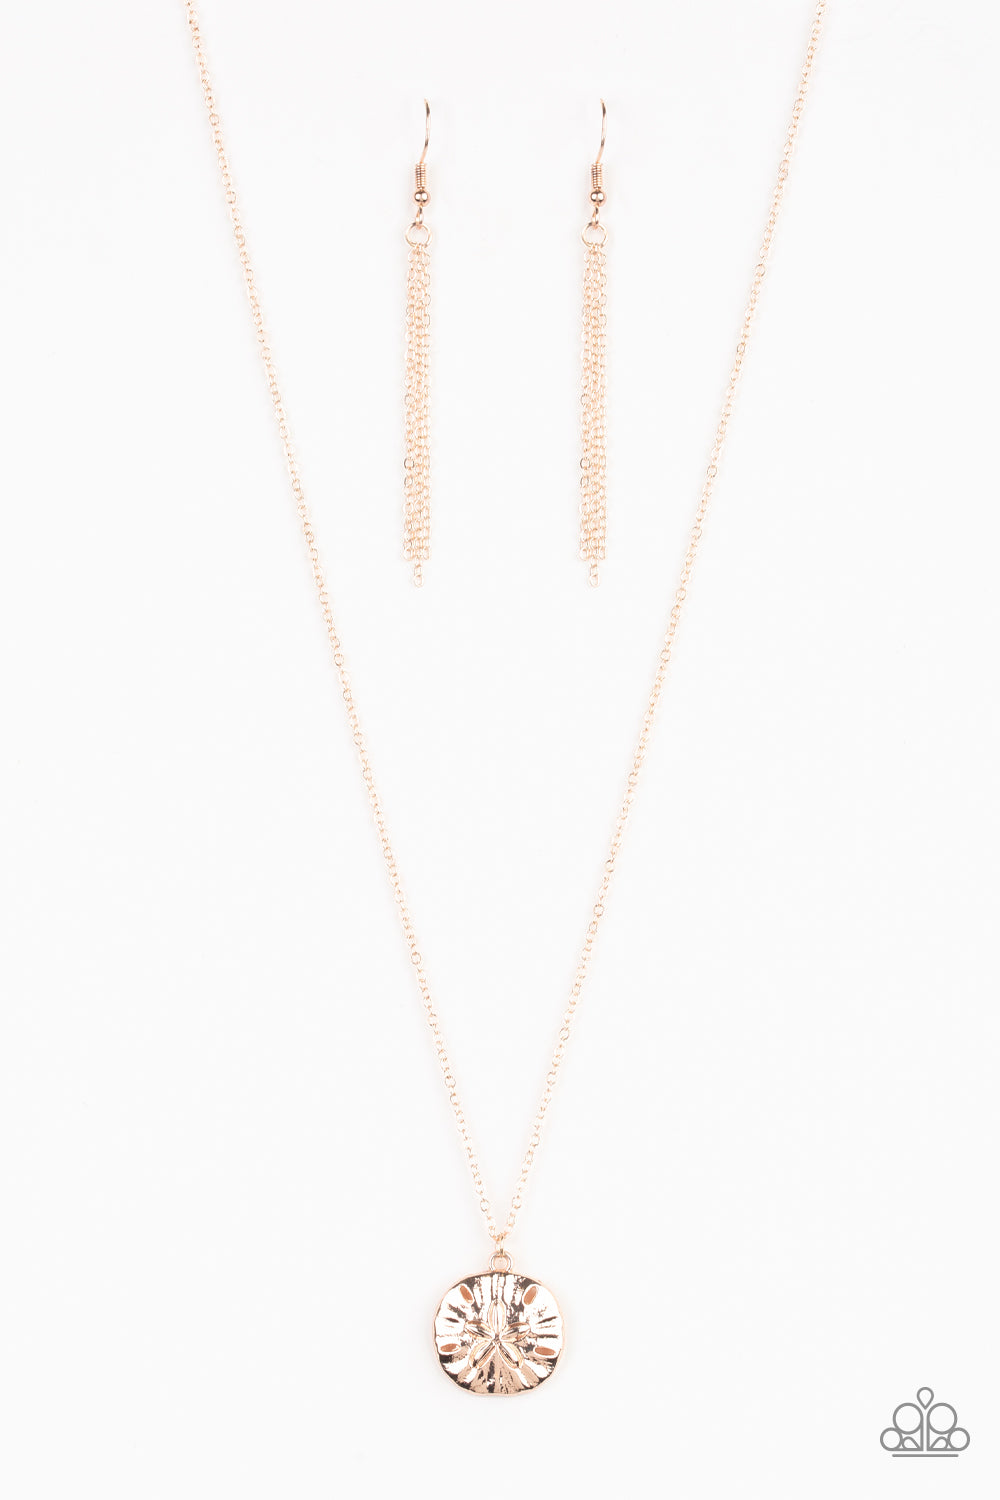 Sand Dollar Shores Necklace